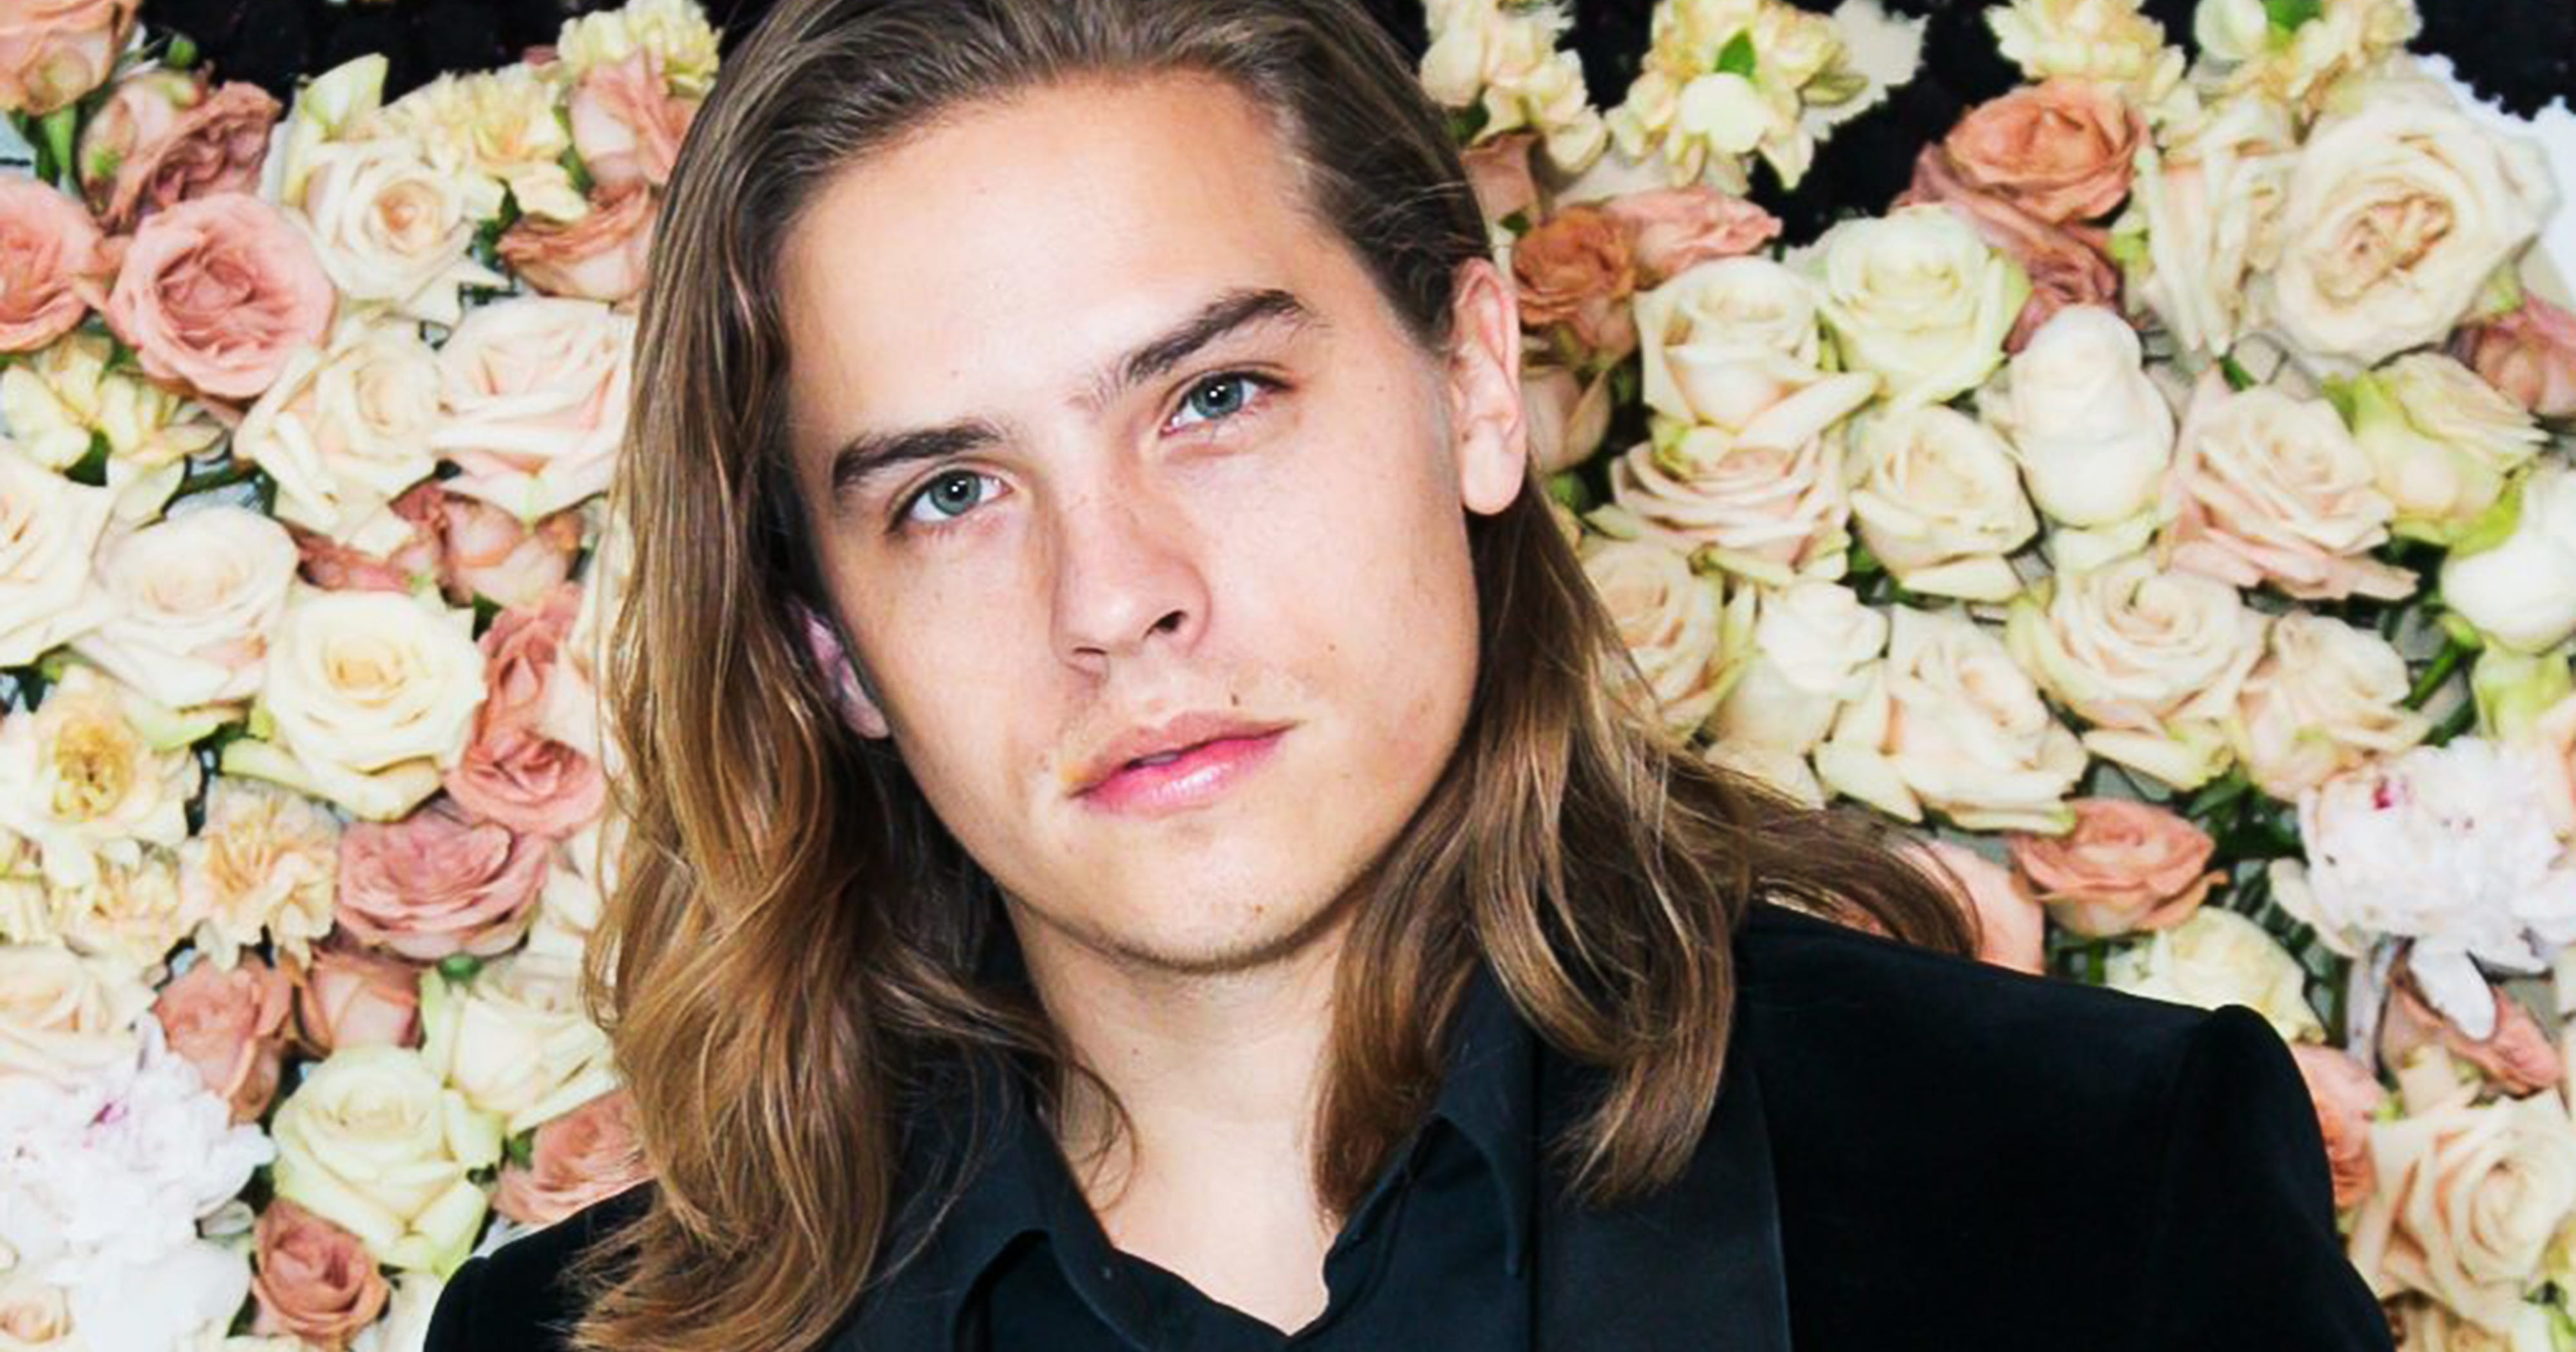 Dylan Sprouse Just Called Jared Leto A Creep On Twitter